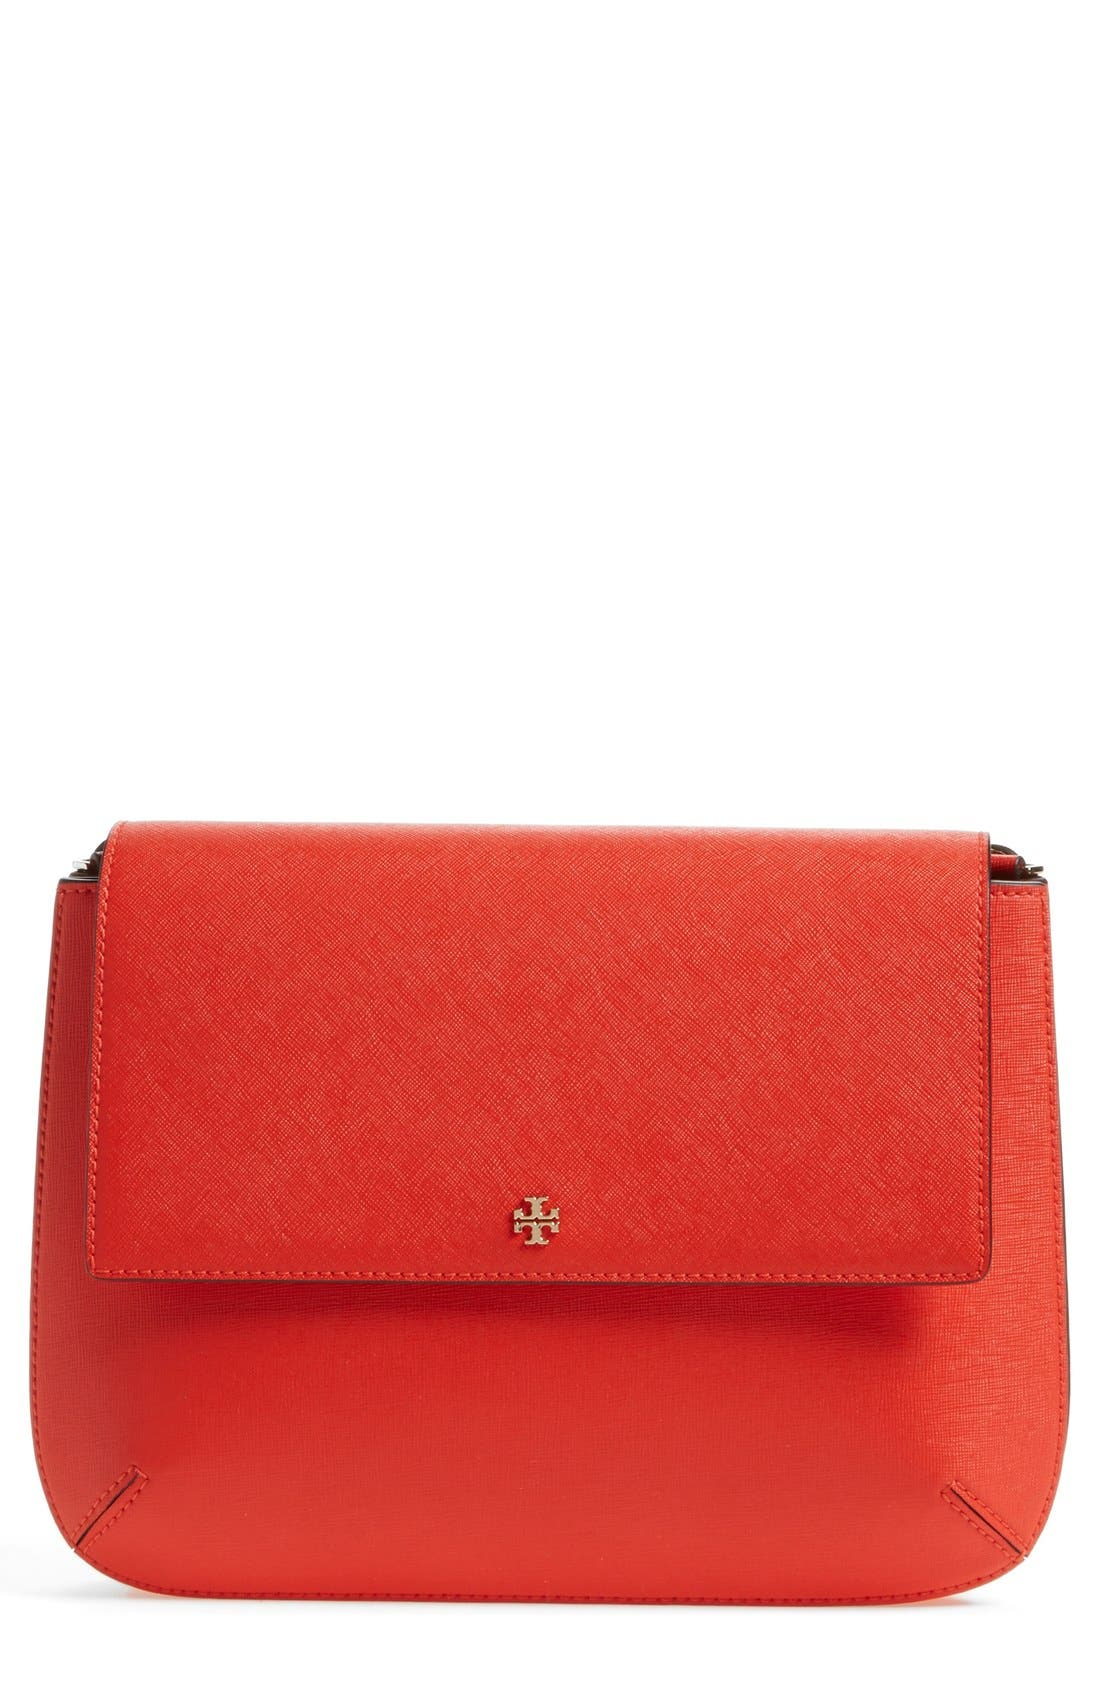 Main Image - Tory Burch 'Robinson' Crossbody Bag